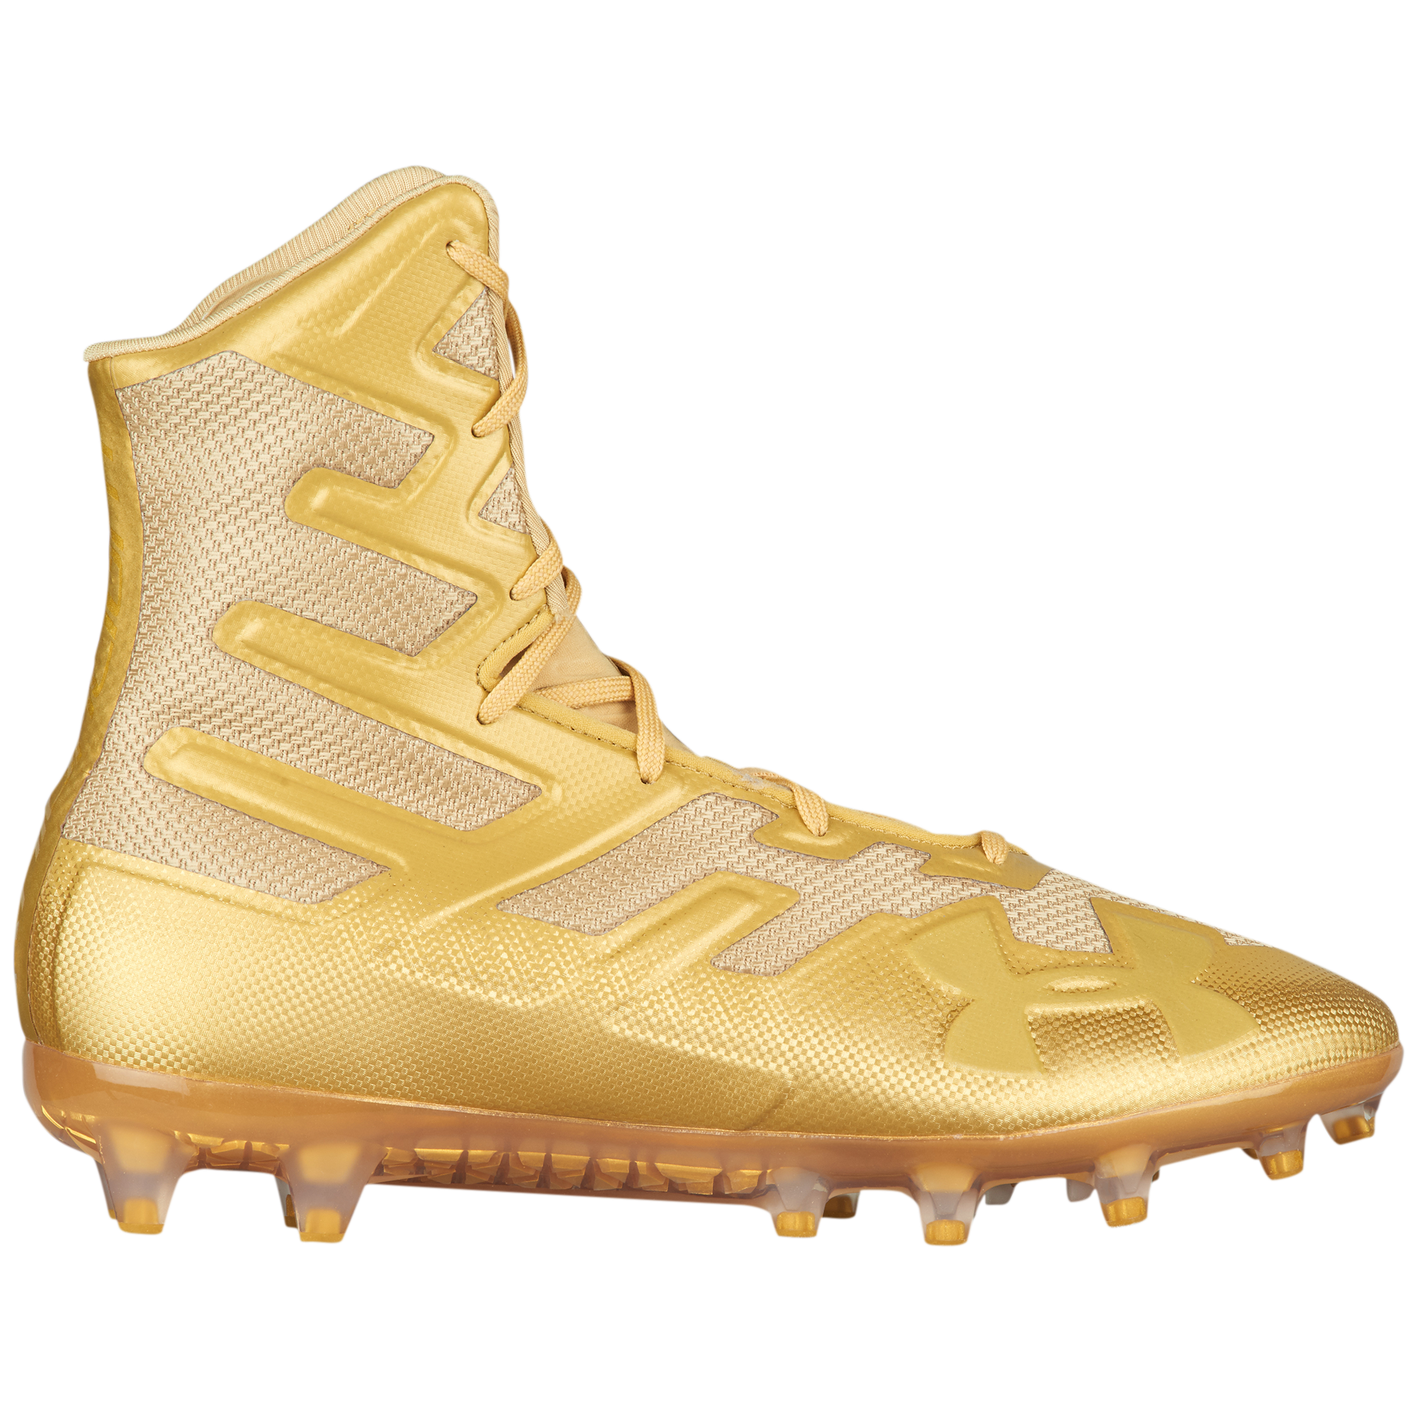 7a60bbc9833 Under Armour Highlight MC - Men's - Football - Shoes - Metallic Gold ...